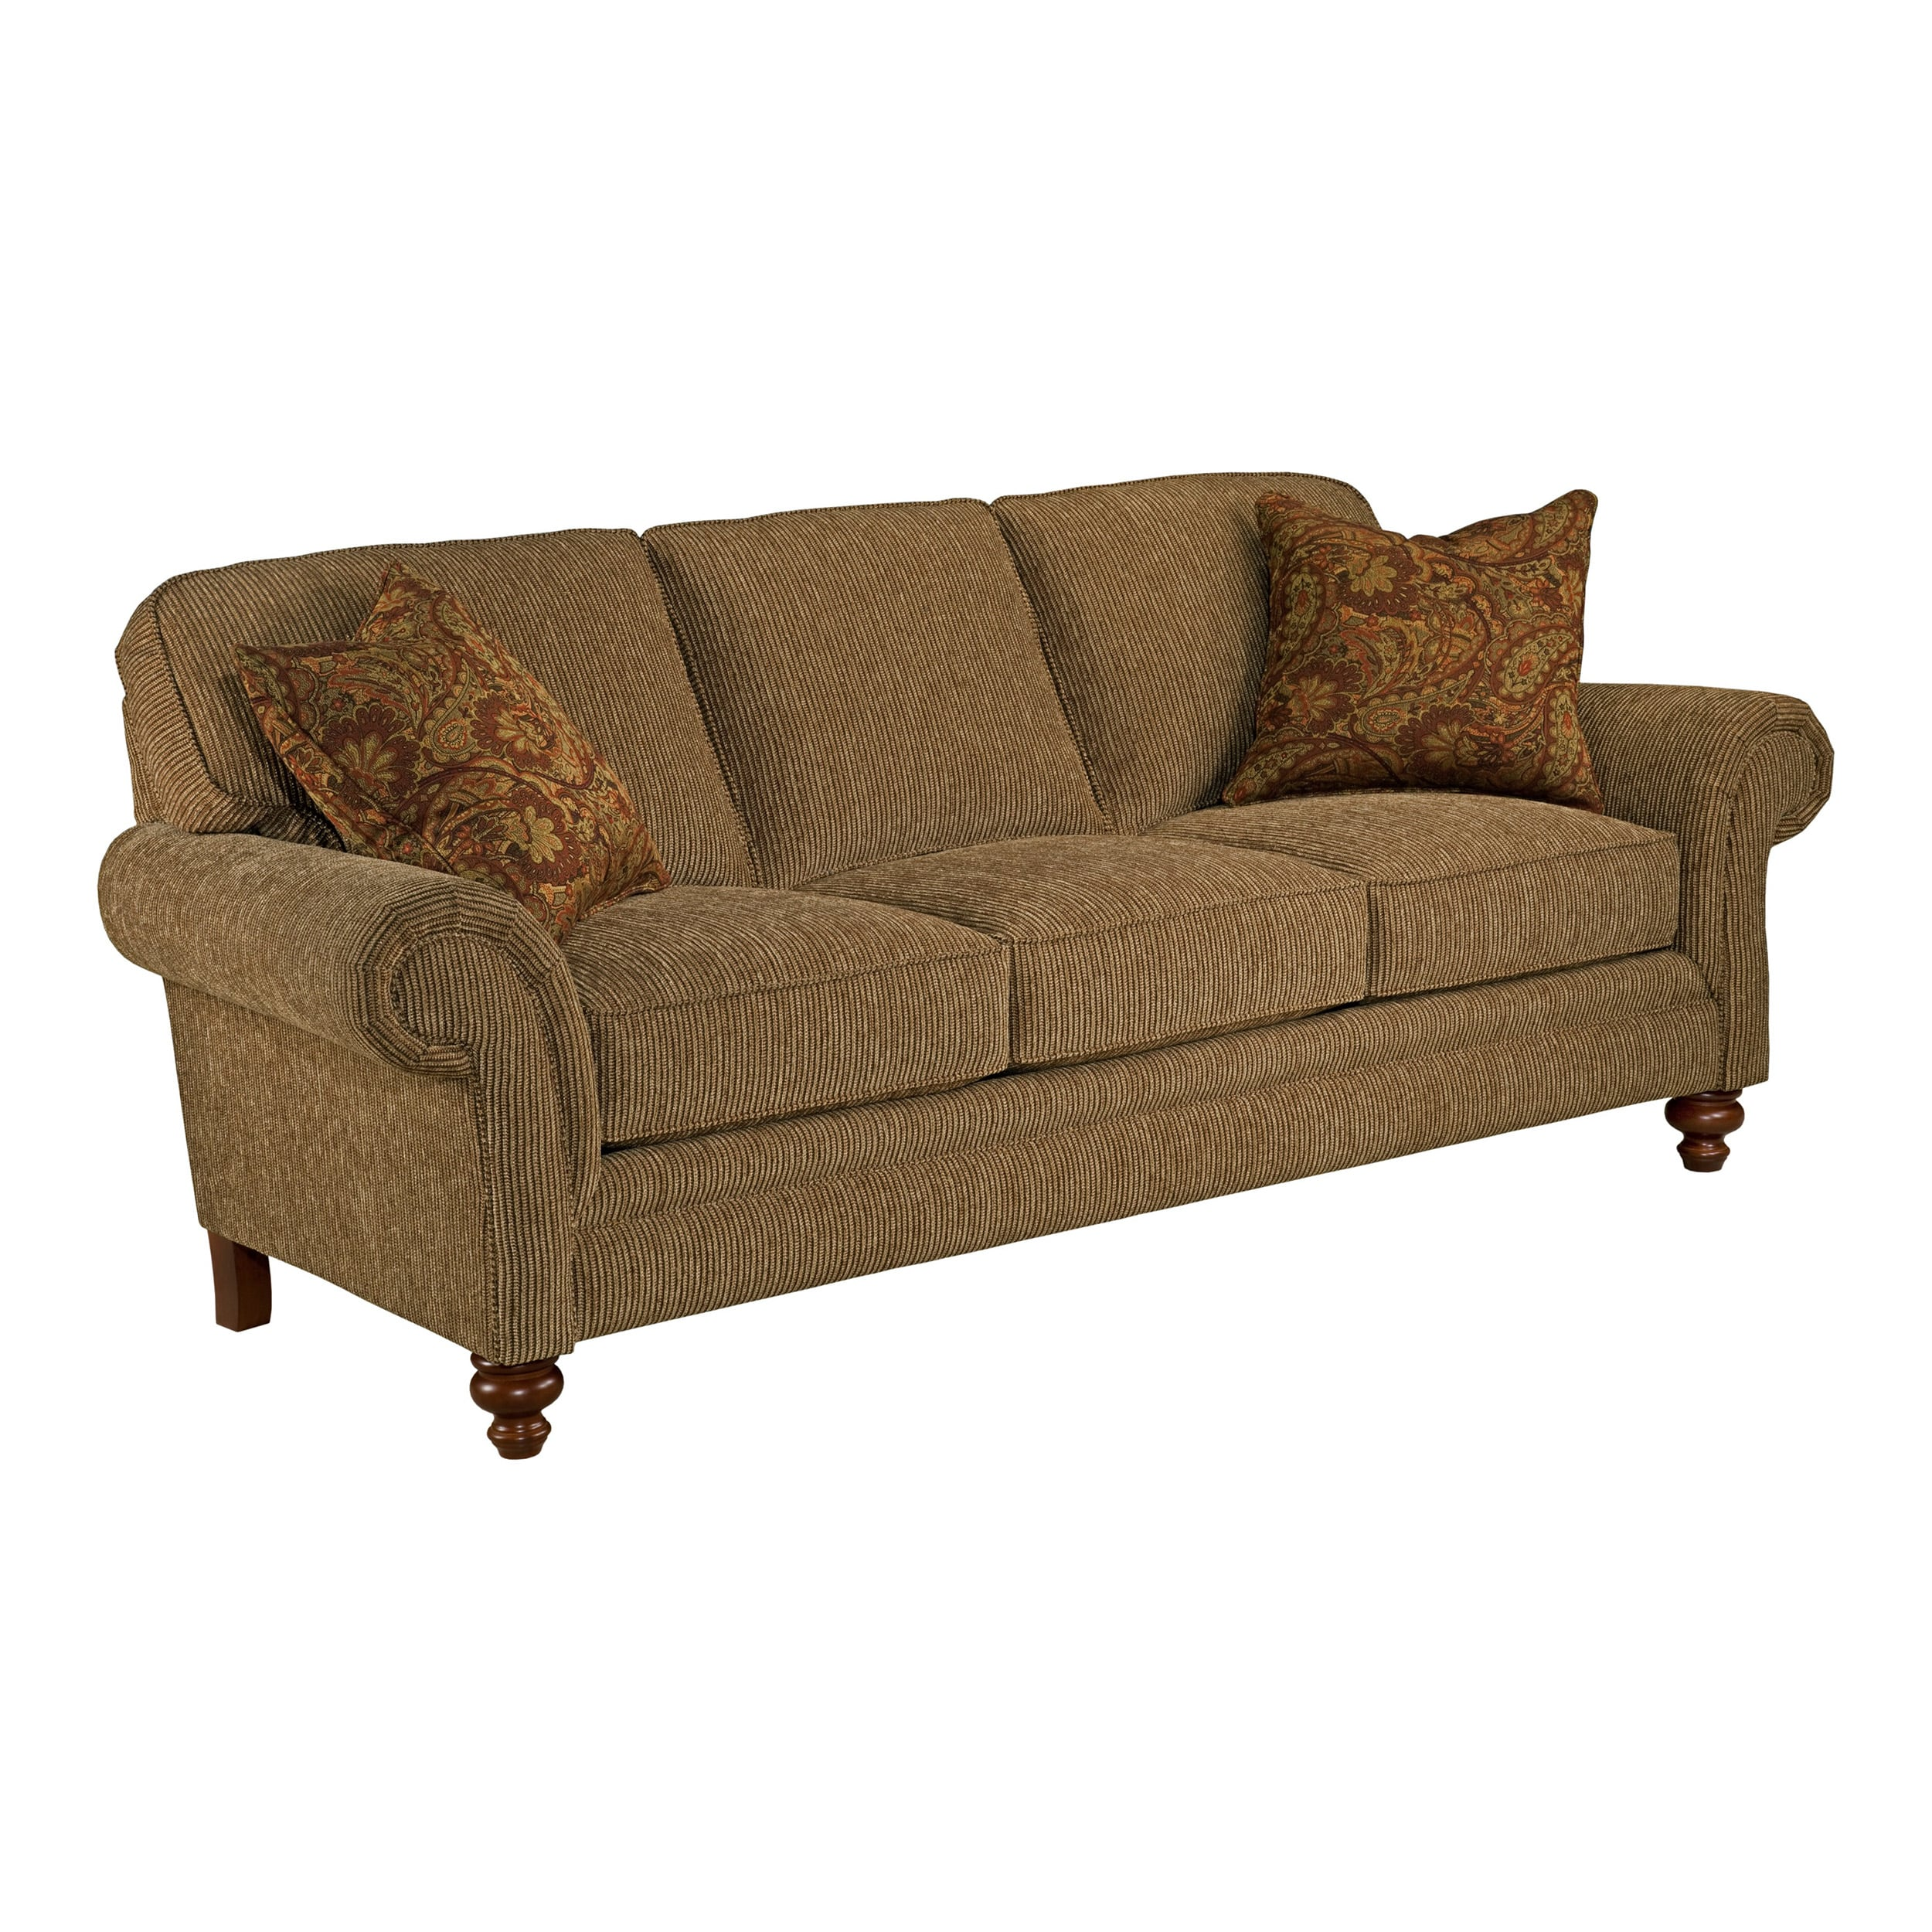 Broyhill Lara Elegant Traditional Queen Sofa Sleeper